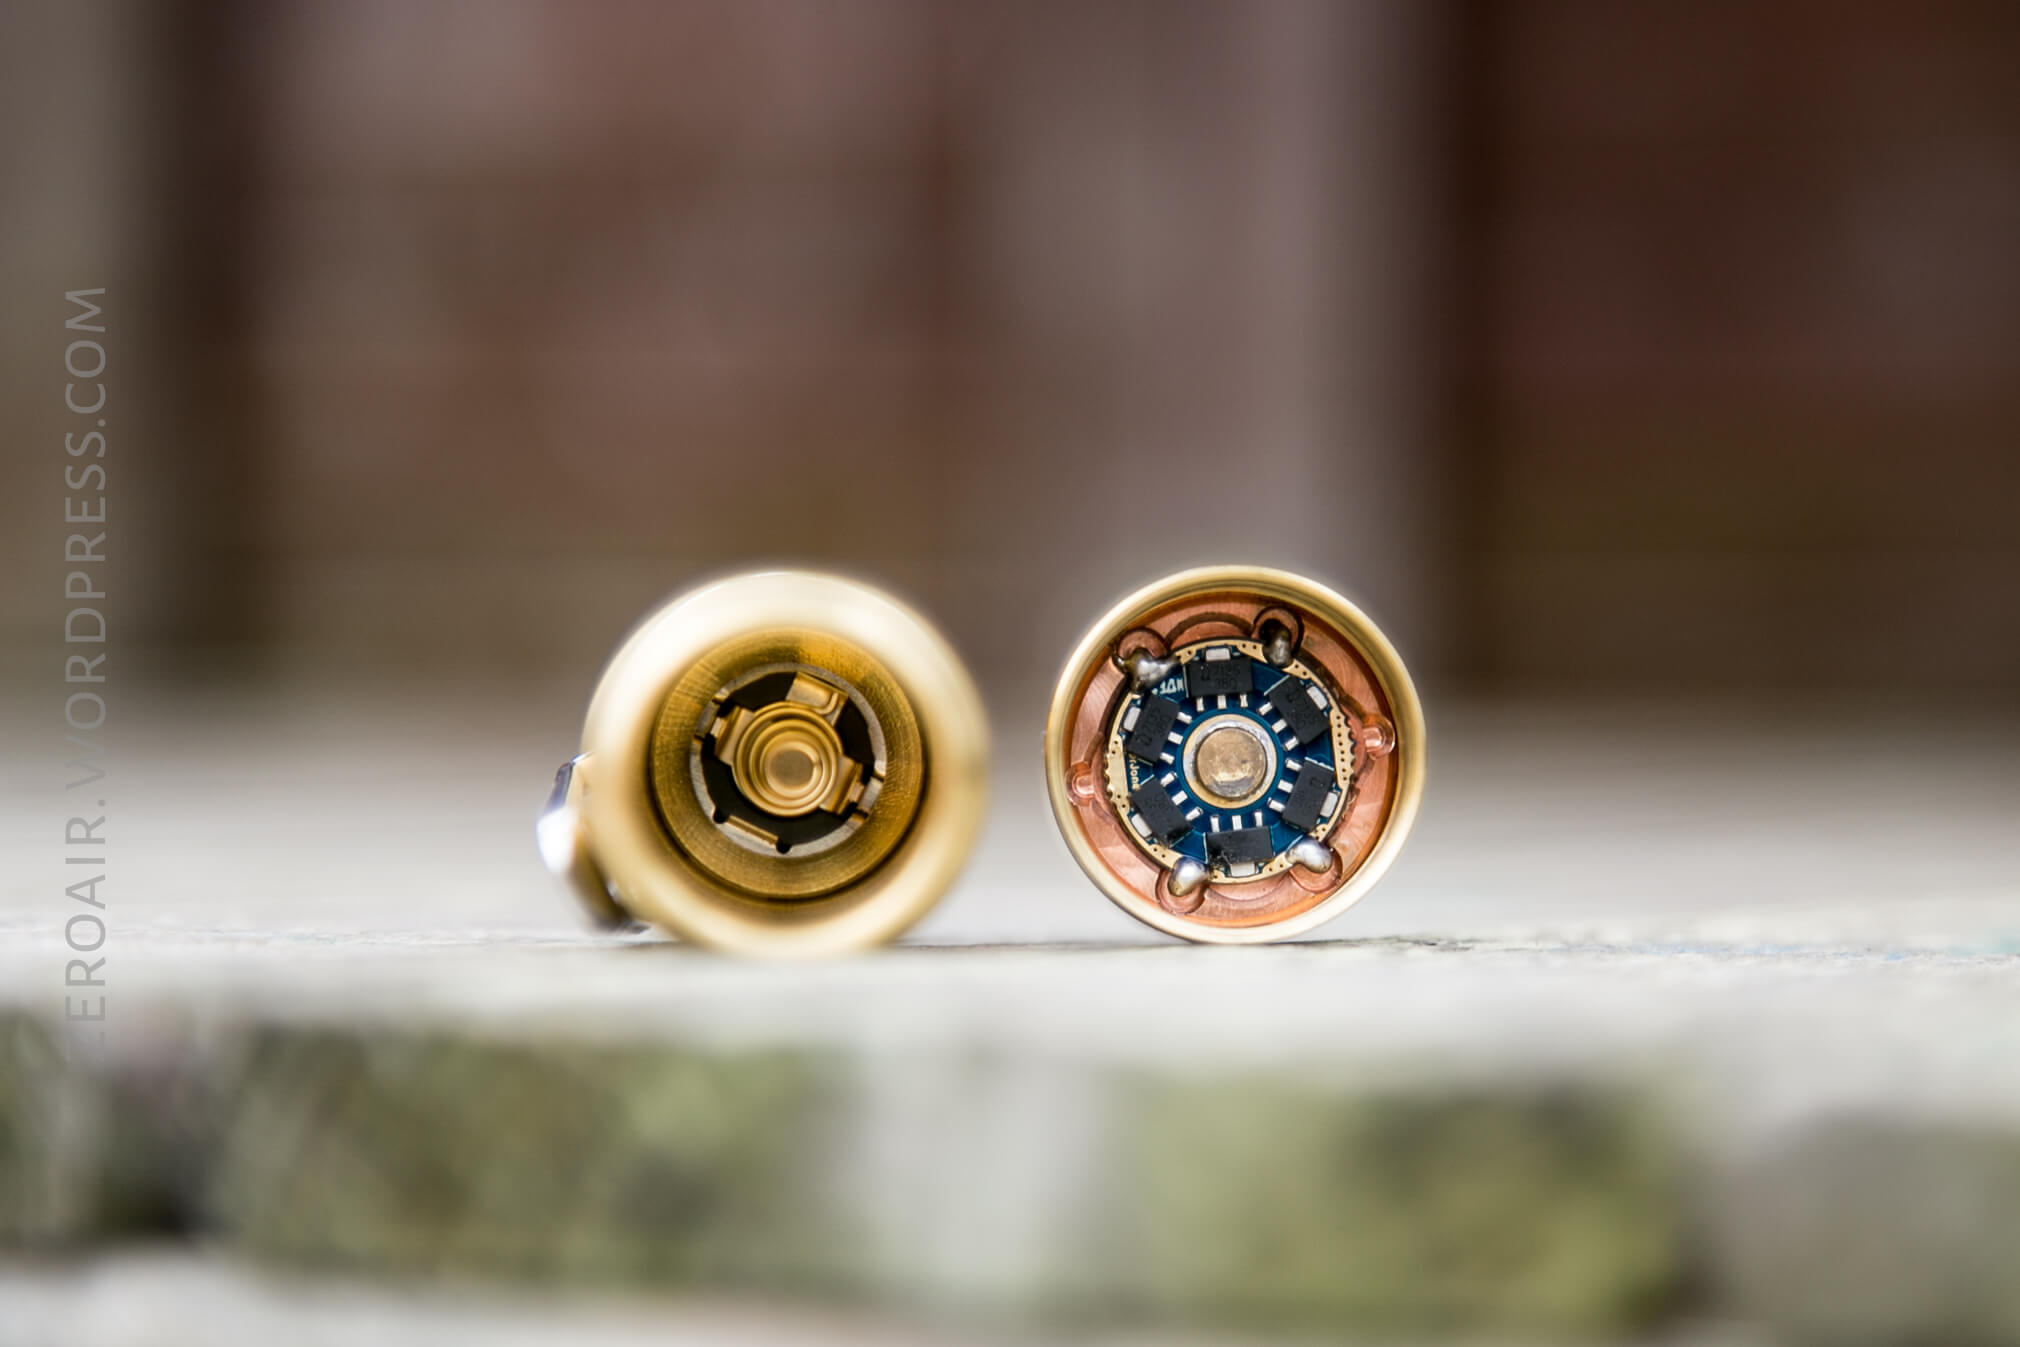 zeroair_reviews_venom_orion_brass_nichia_22.jpg